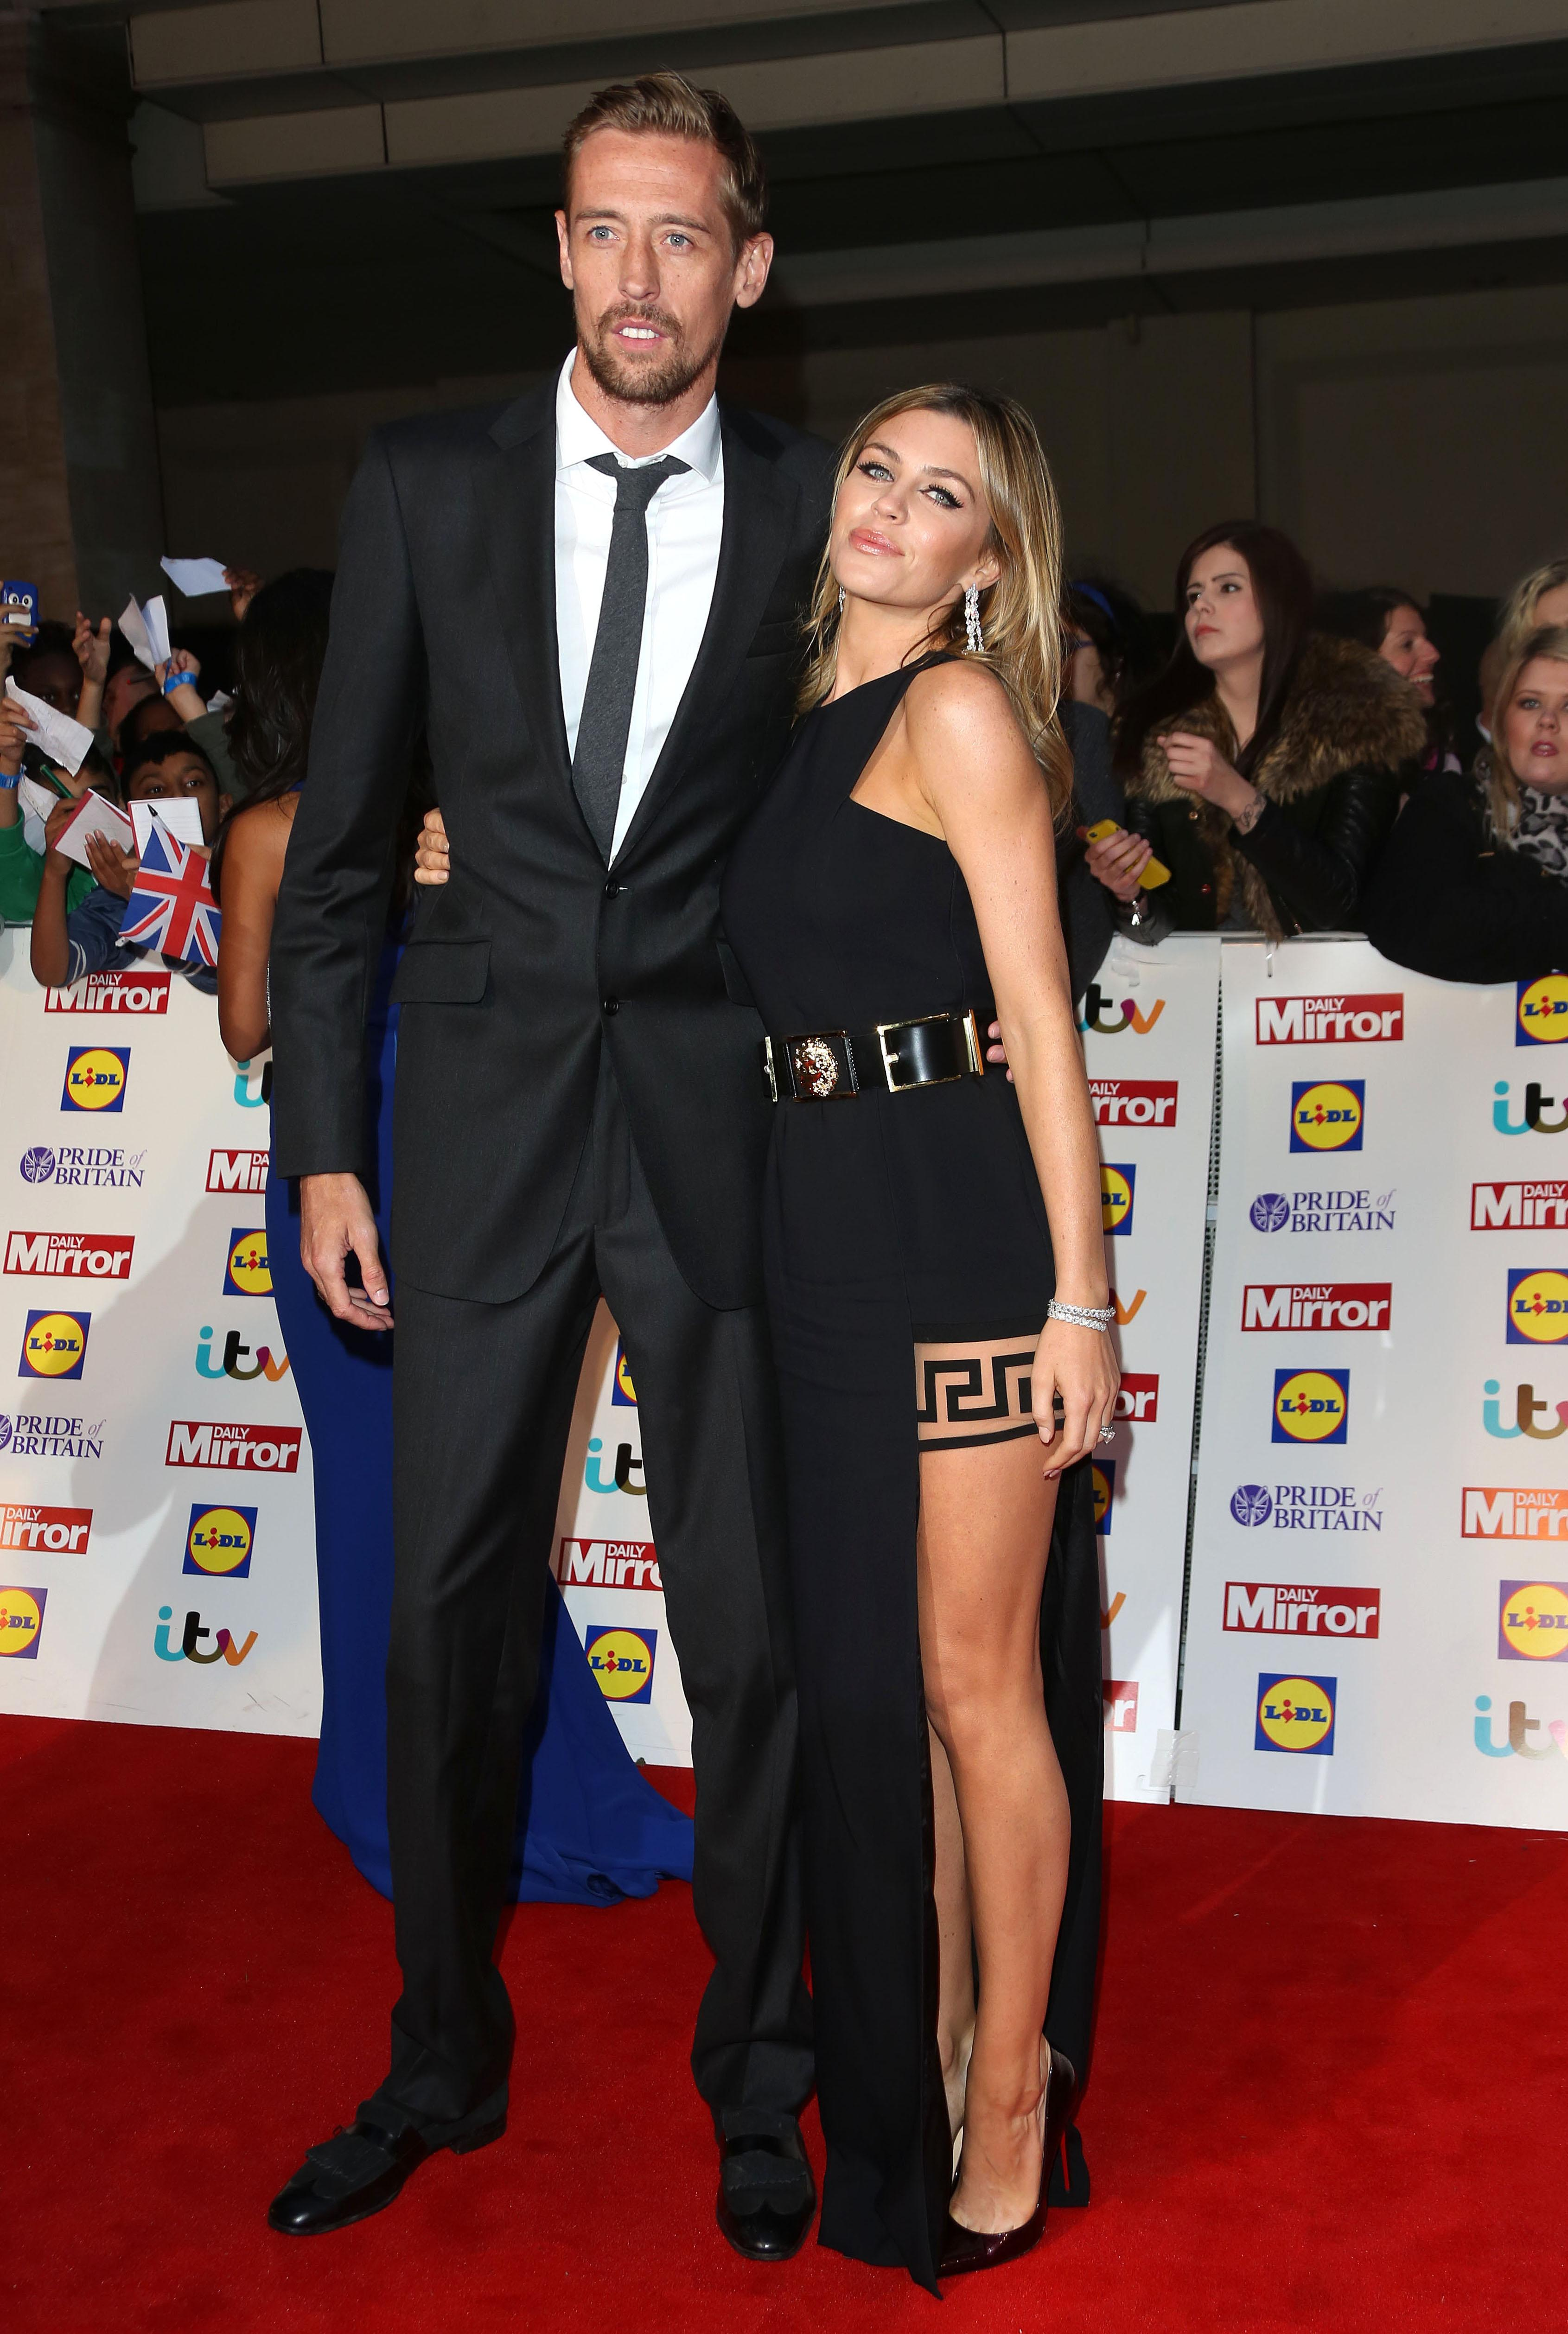 Father-of-three Crouch is married to model Abbey Clancy